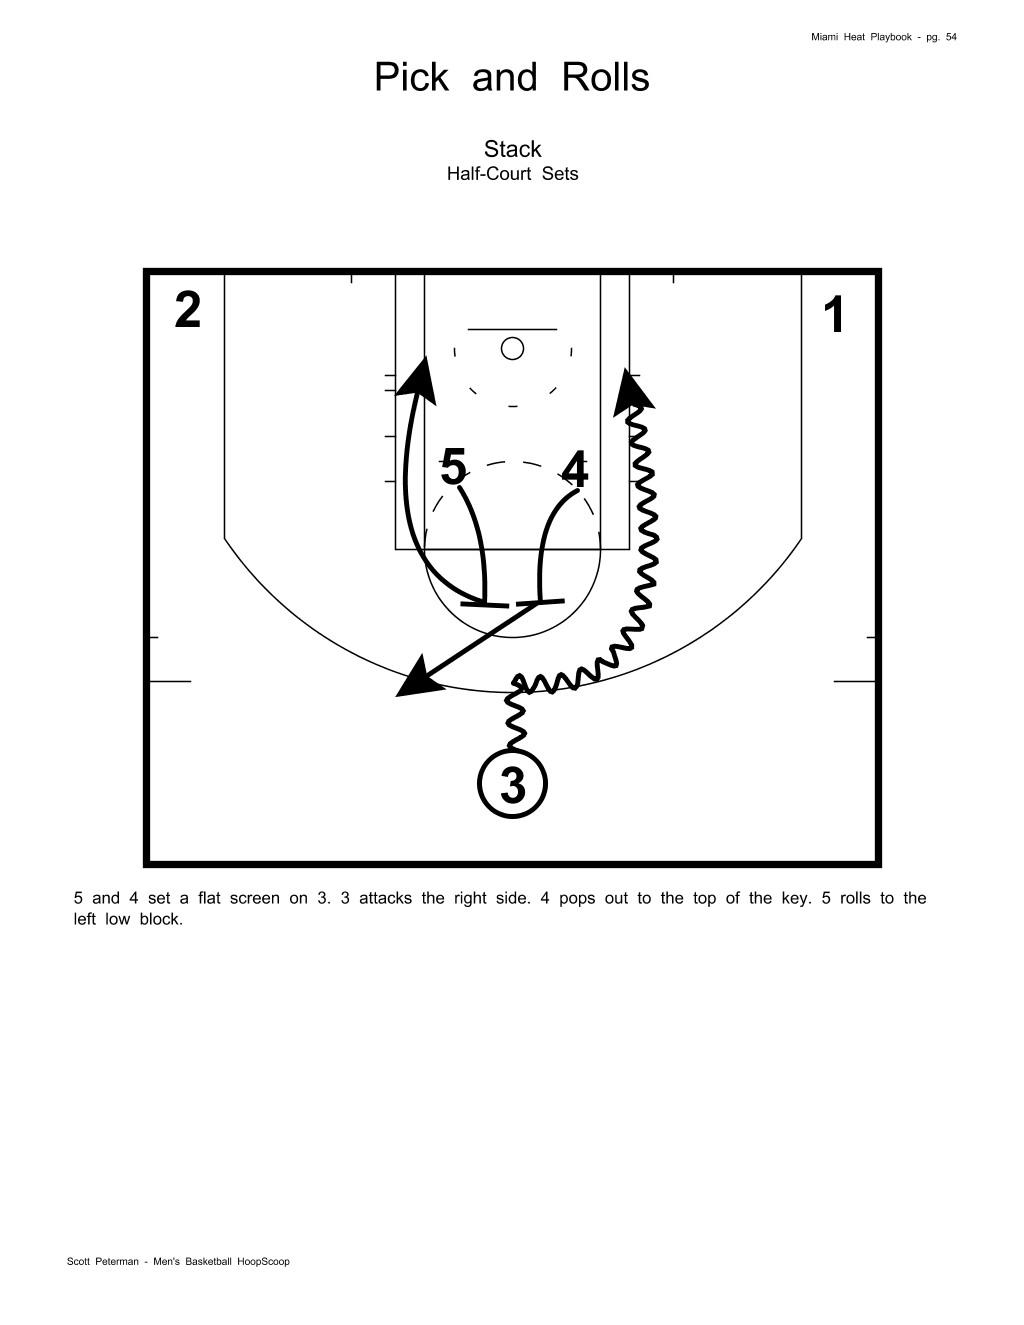 Purchase this 2011 NBA Miami Heat Playbook here! af38766b7